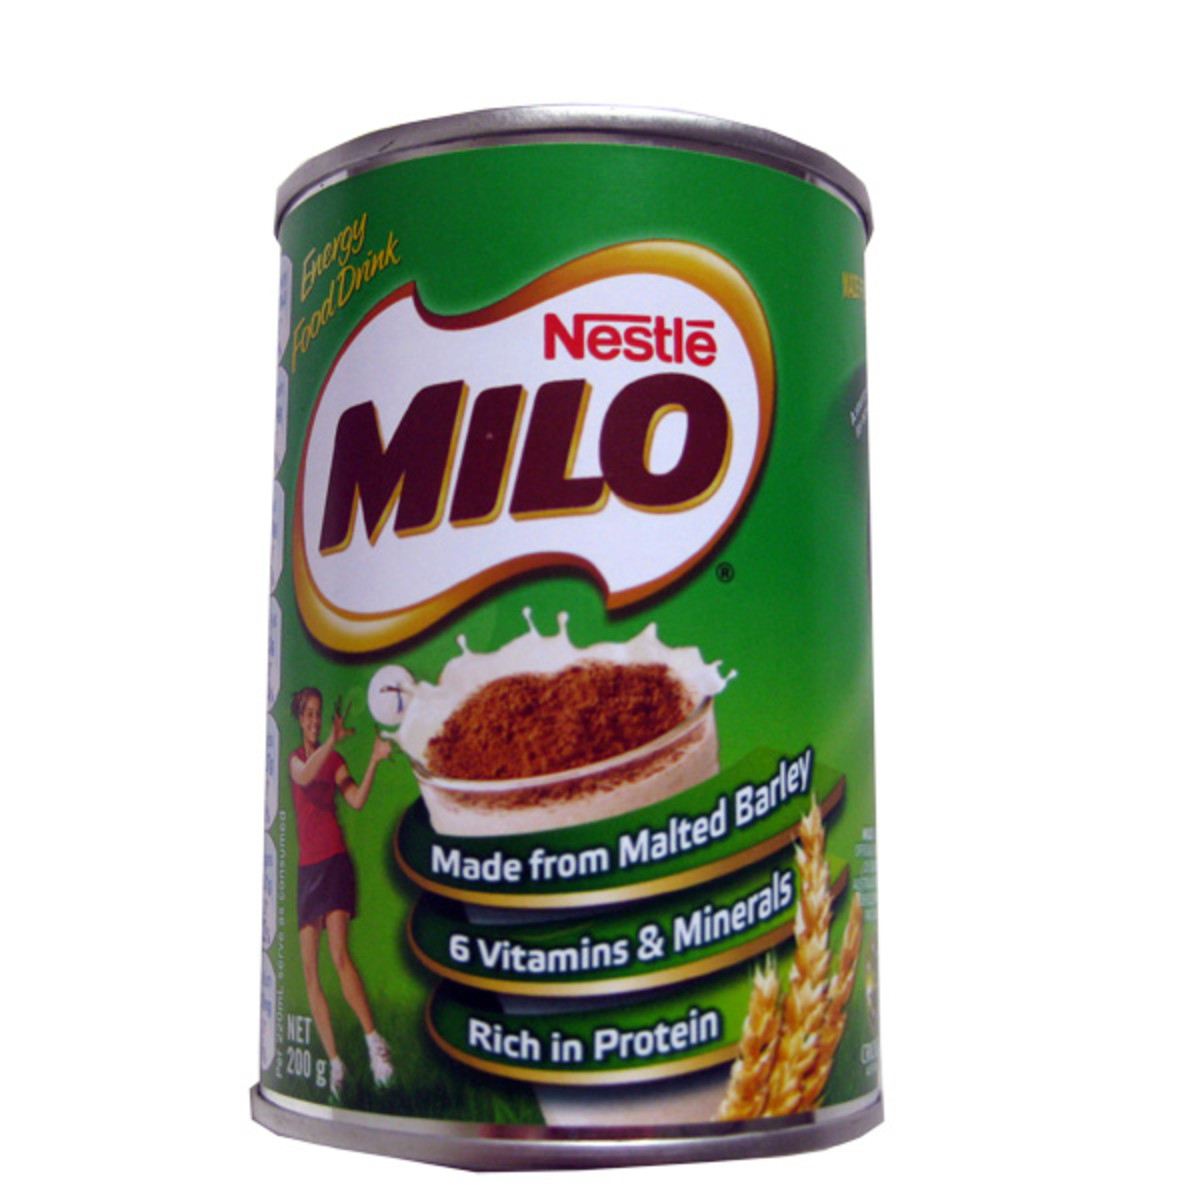 Milo, Better Than Hot Chocloate